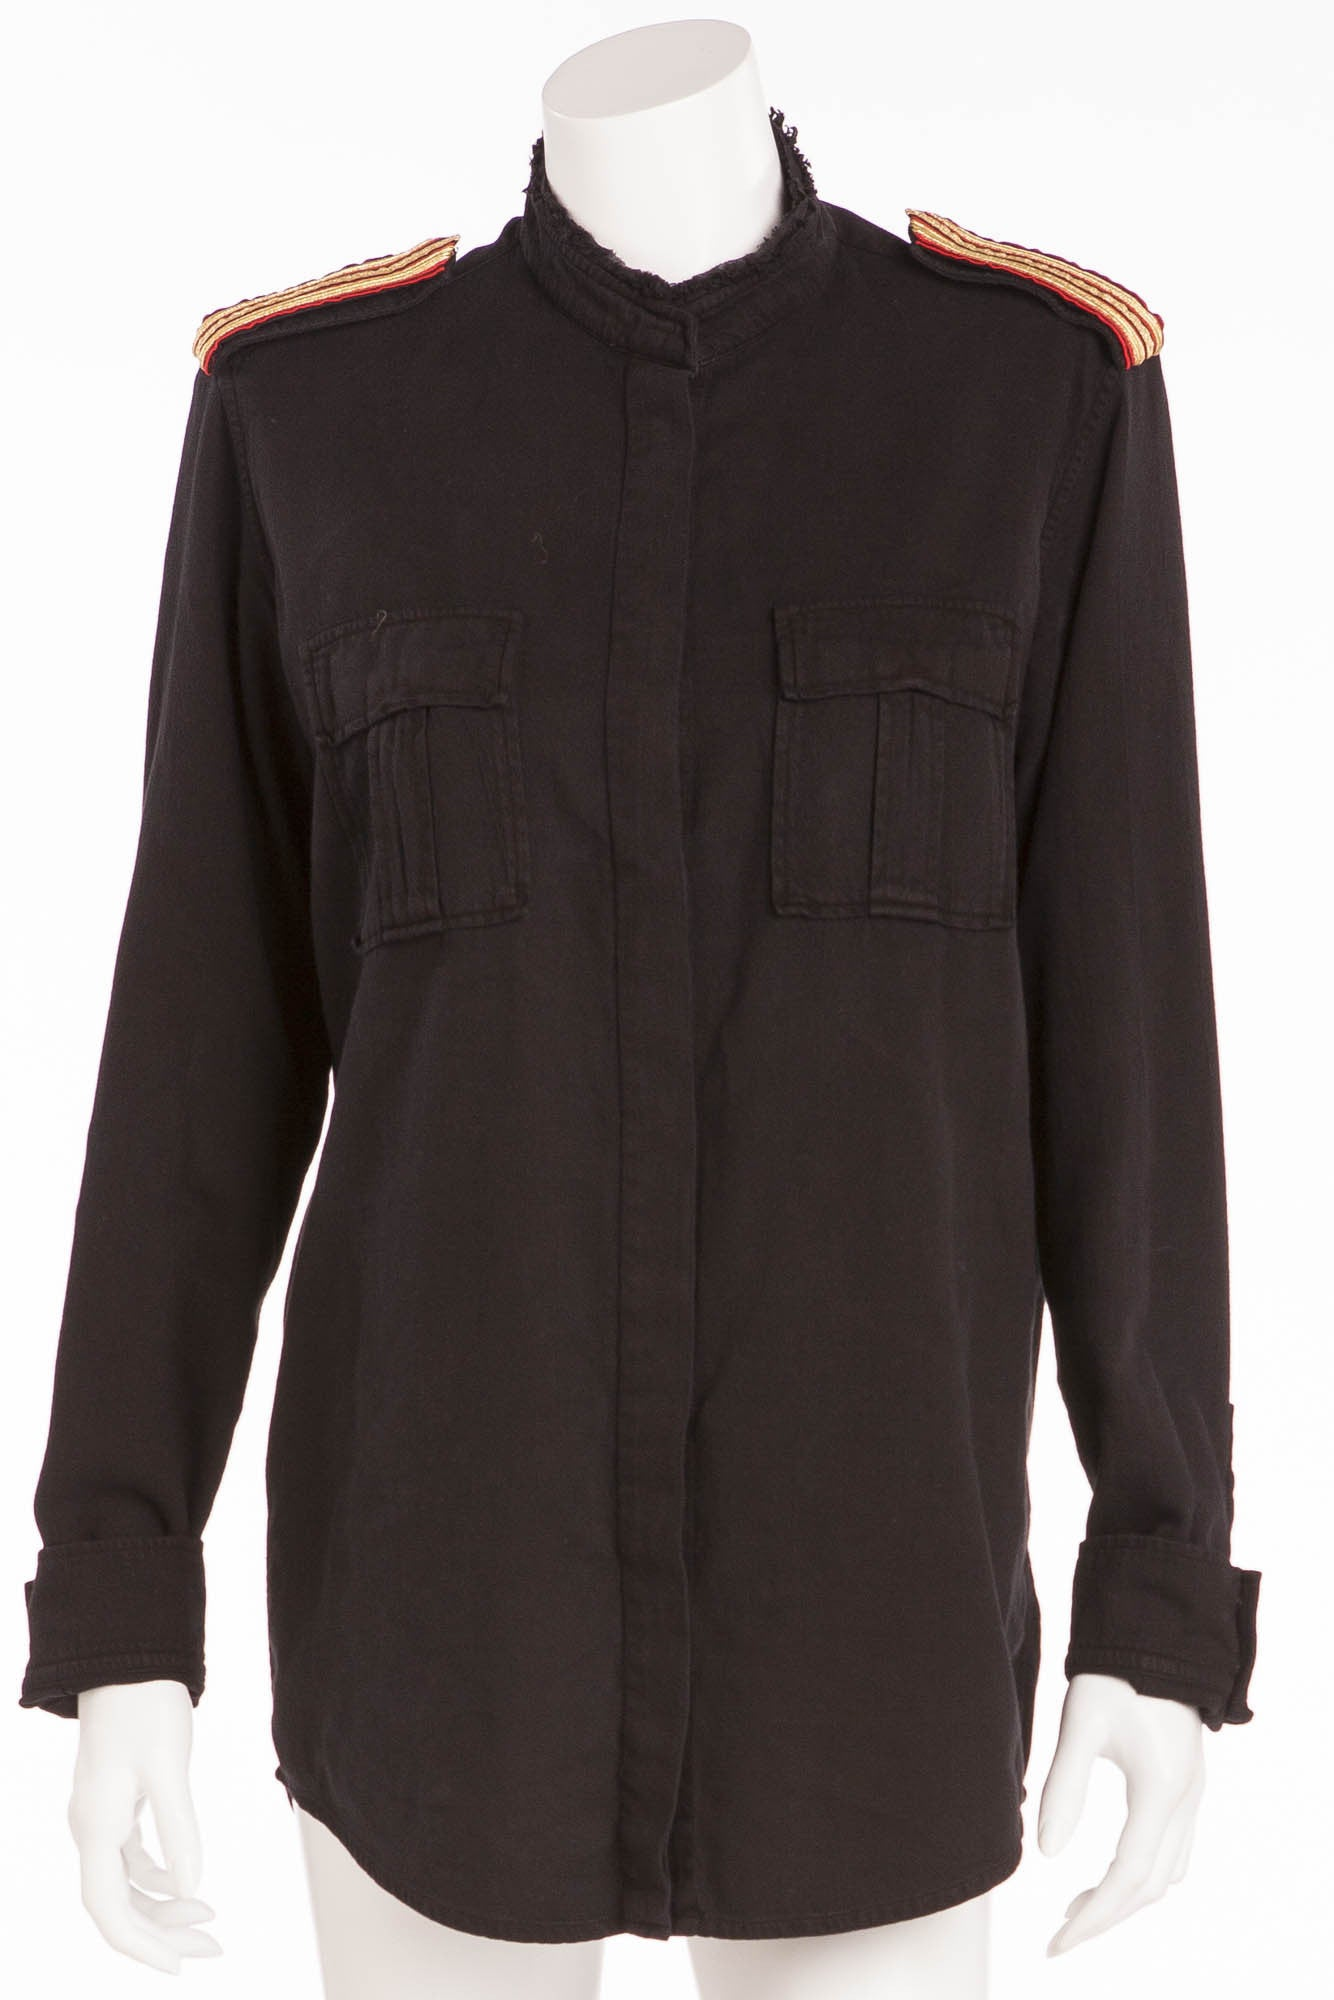 25c6b3b2fb5bf5 Balmain - Black Button Down Red and Gold Trimmed Shoulders - FR 40 – LUXHAVE